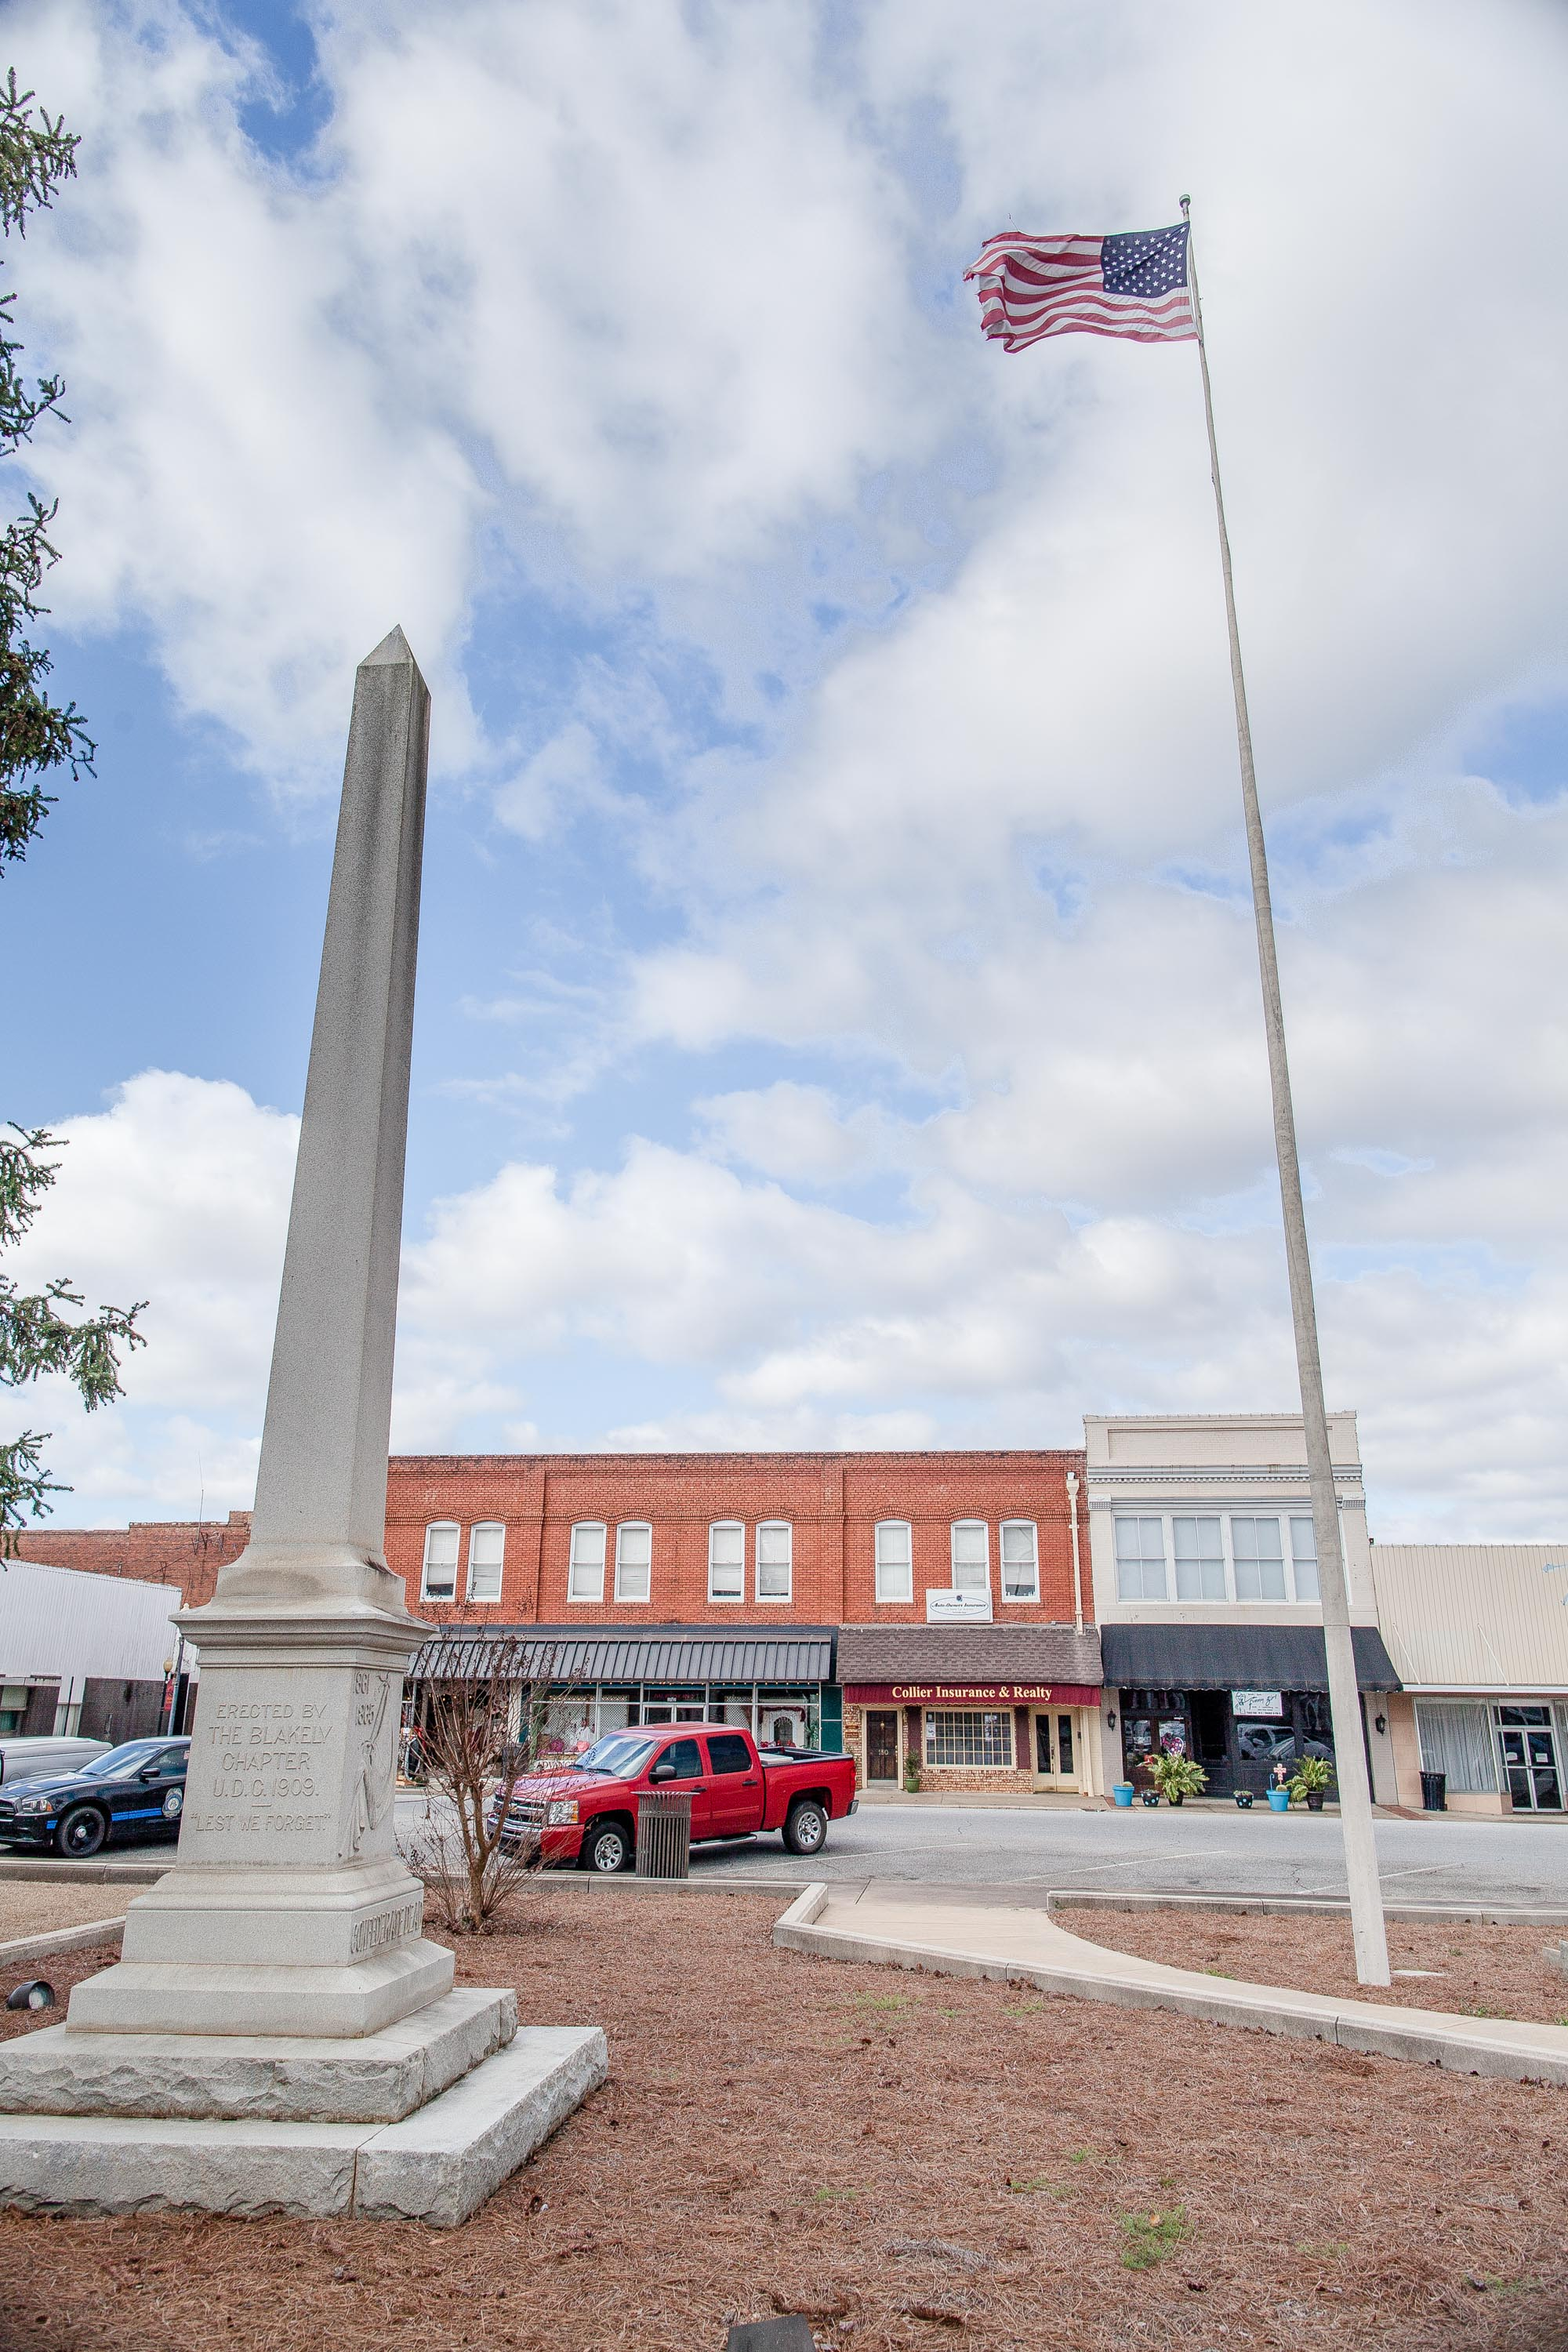 A Confederate Flagpole, raised in April 1861 at the Early County Courthouse, still stands today. Encased in fiberglass for the 100th anniversary of the American Civil War, the flagpole, made of white pine, stands as a tribute to the Early County Confederate veterans who marched off to war as ordered by the State of Georgia.